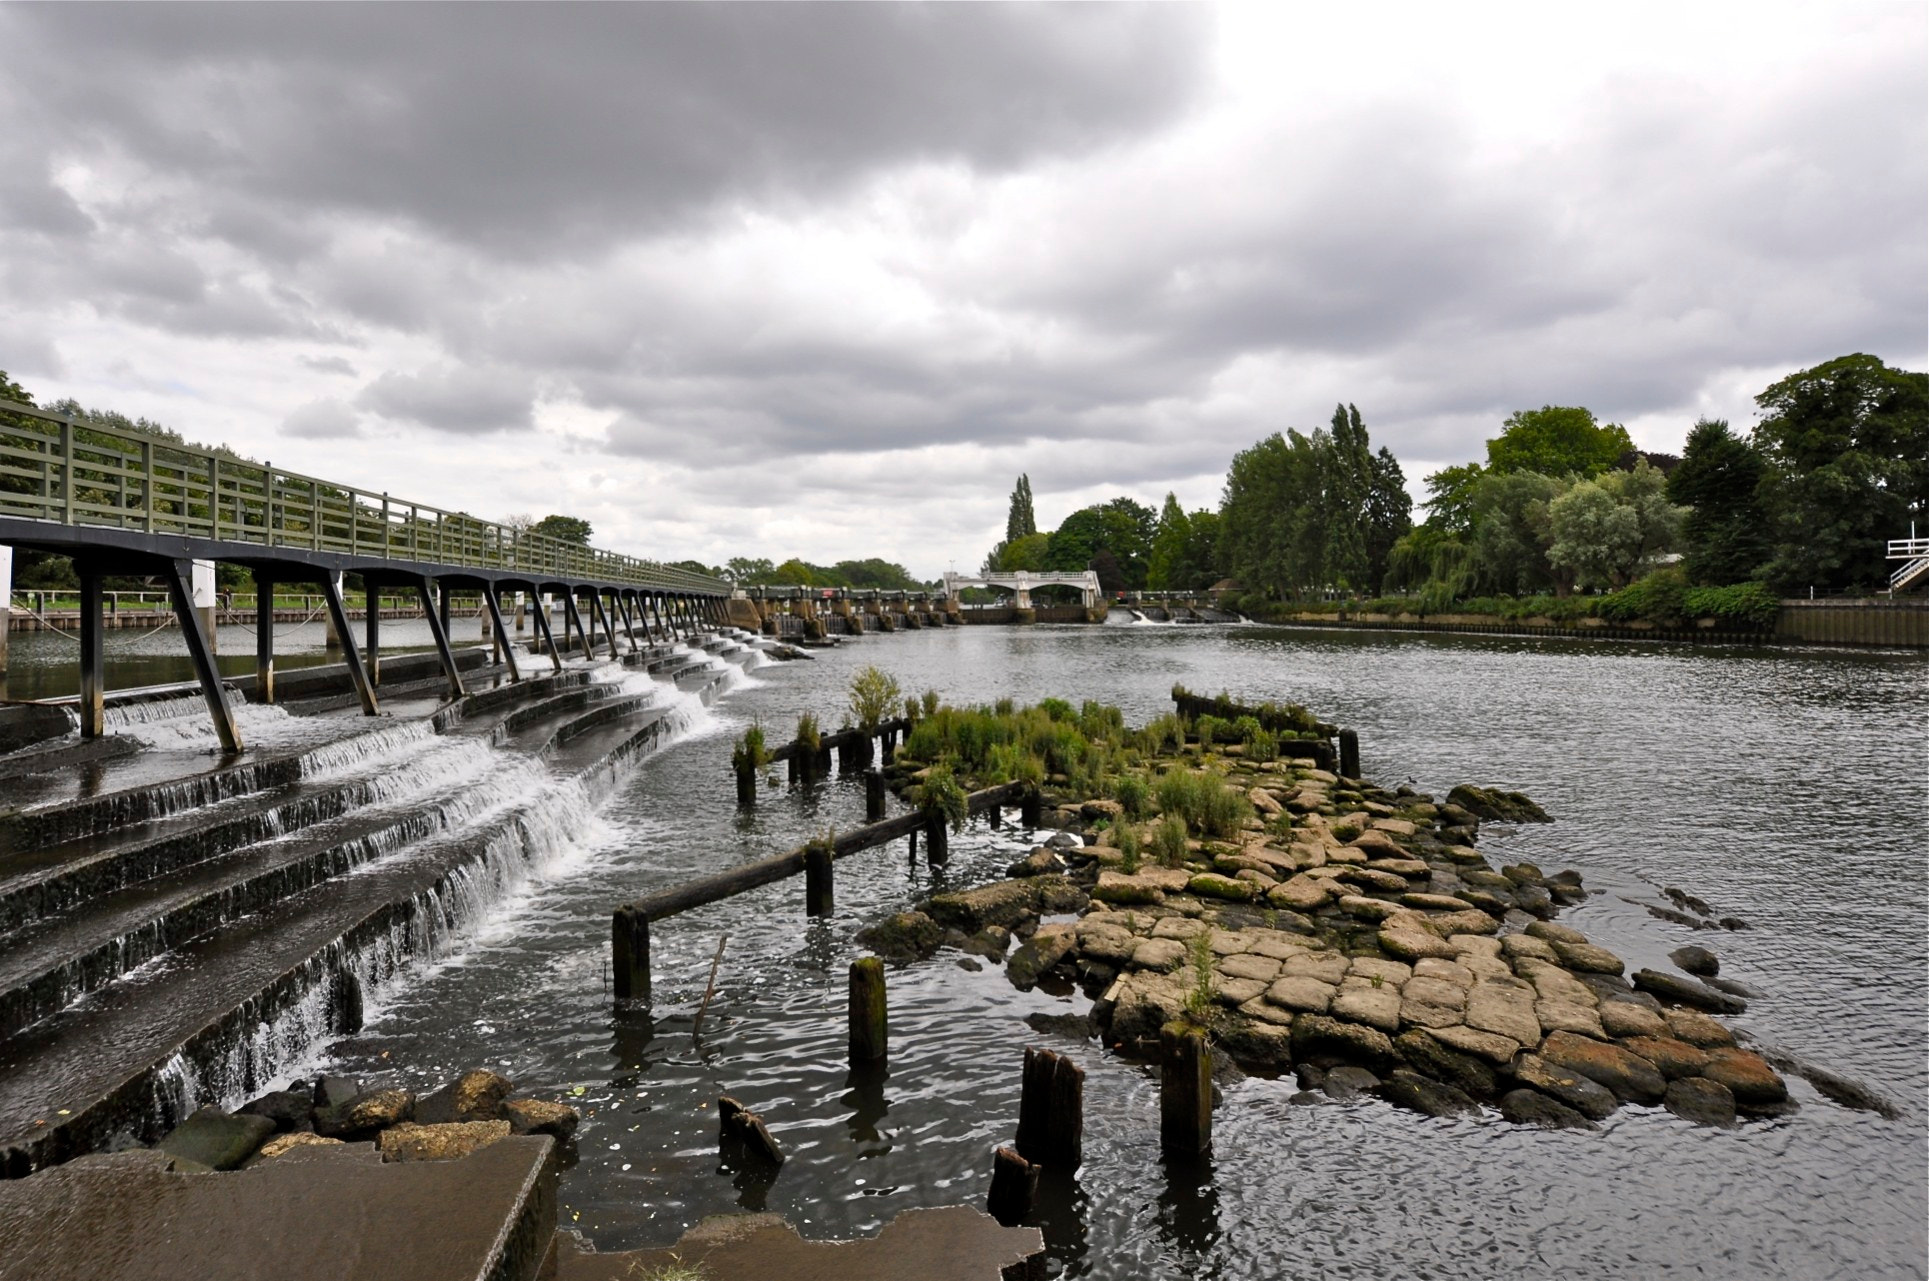 Photograph teddington lock by Mark Barnett on 500px